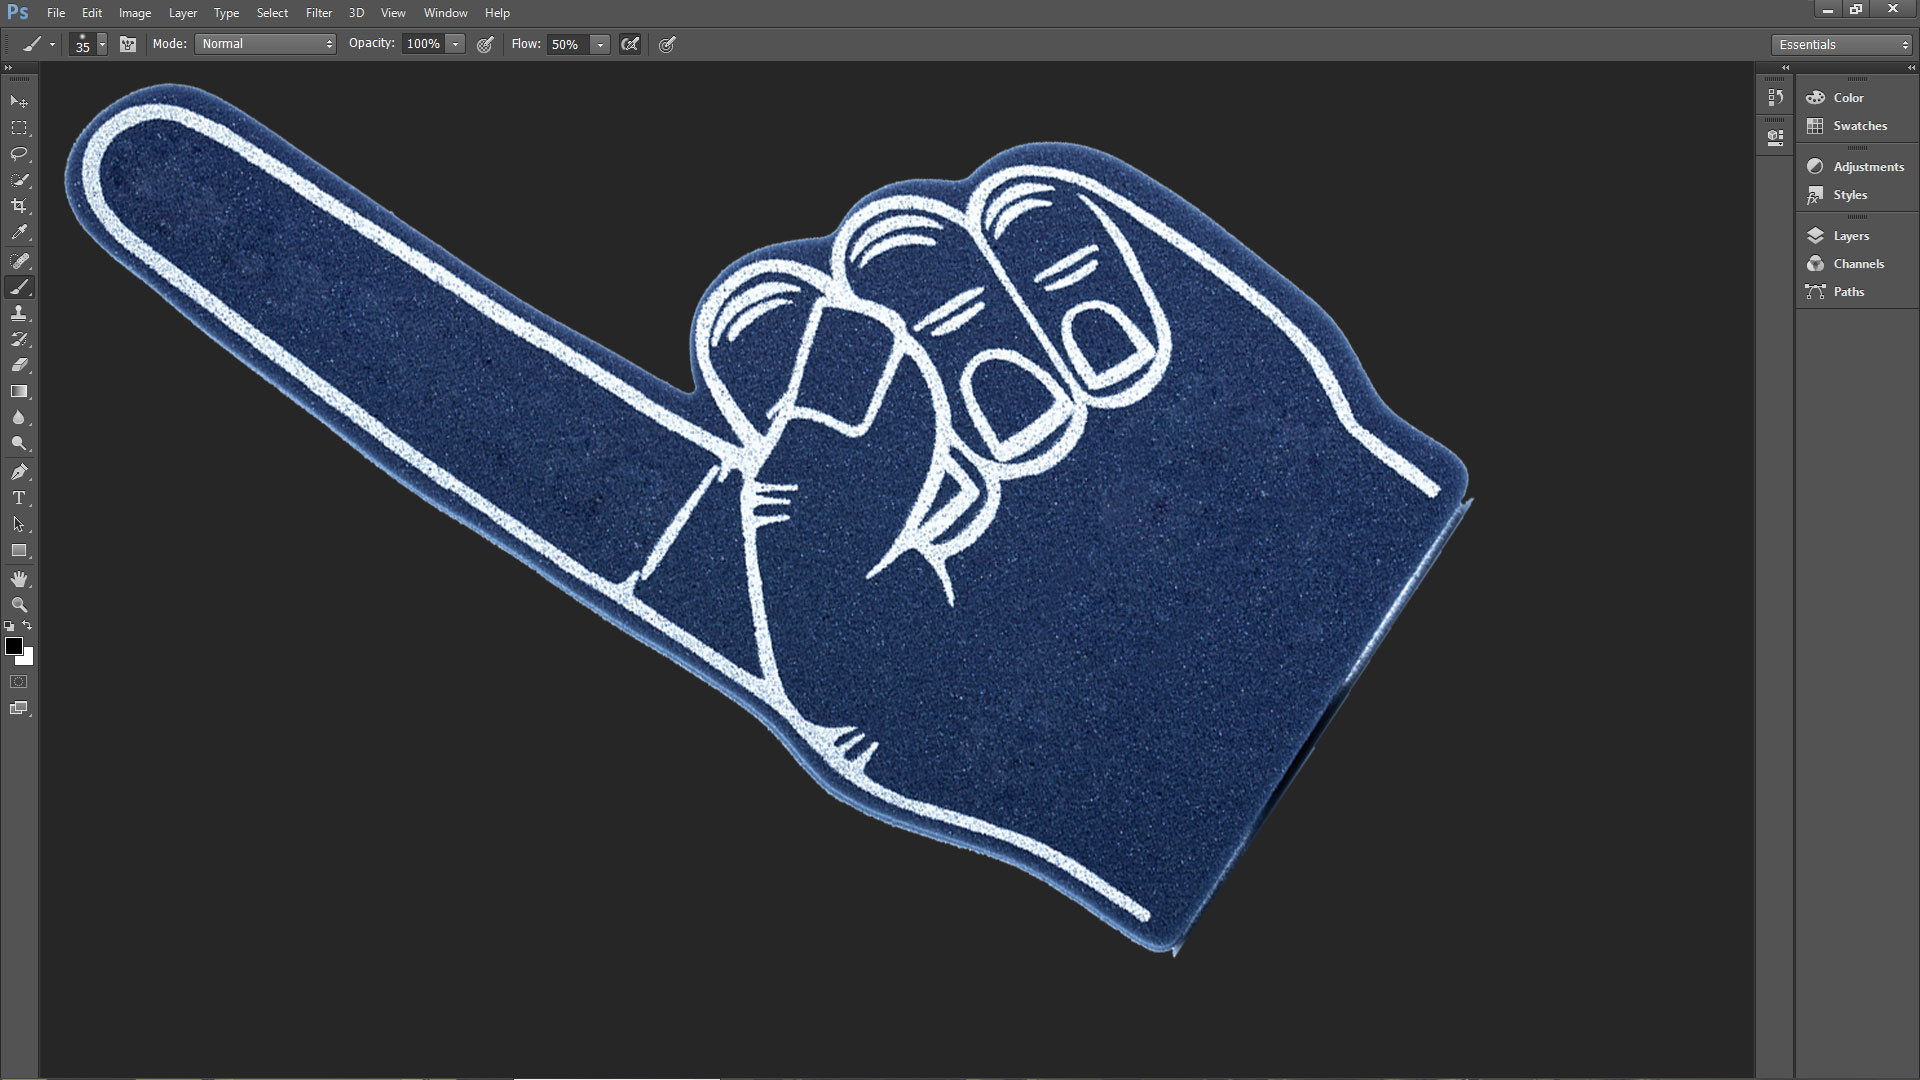 Adobe's microscopic UIs flunk the patented Surface Pro Artist fan finger test.